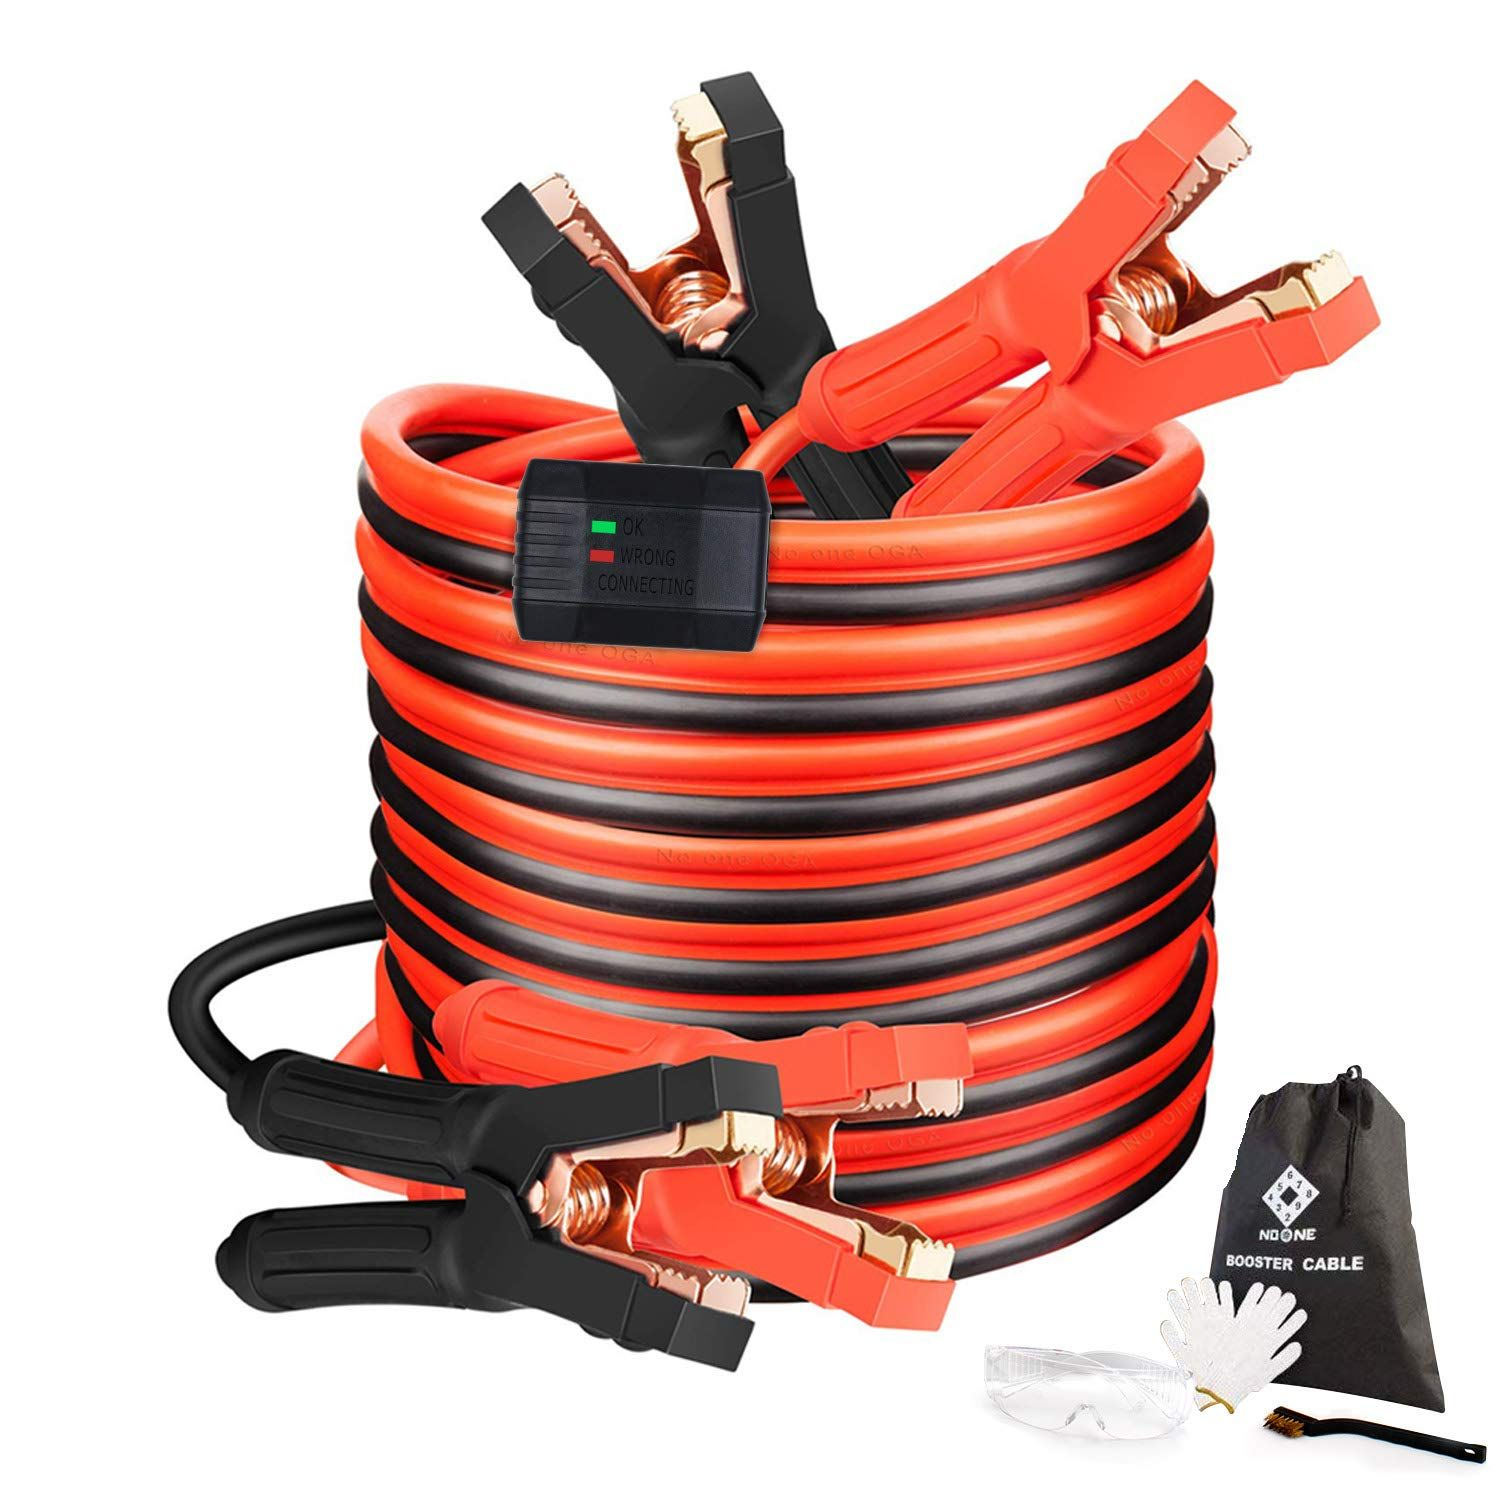 Jumper Cables Heavy Duty Booster Cables 0 Gauge 25feet 0awg X 25ft 1000amp With Goggles Gloves Cleaning Brush In C In 2020 Brush Cleaner Automotive Repair Heavy Duty